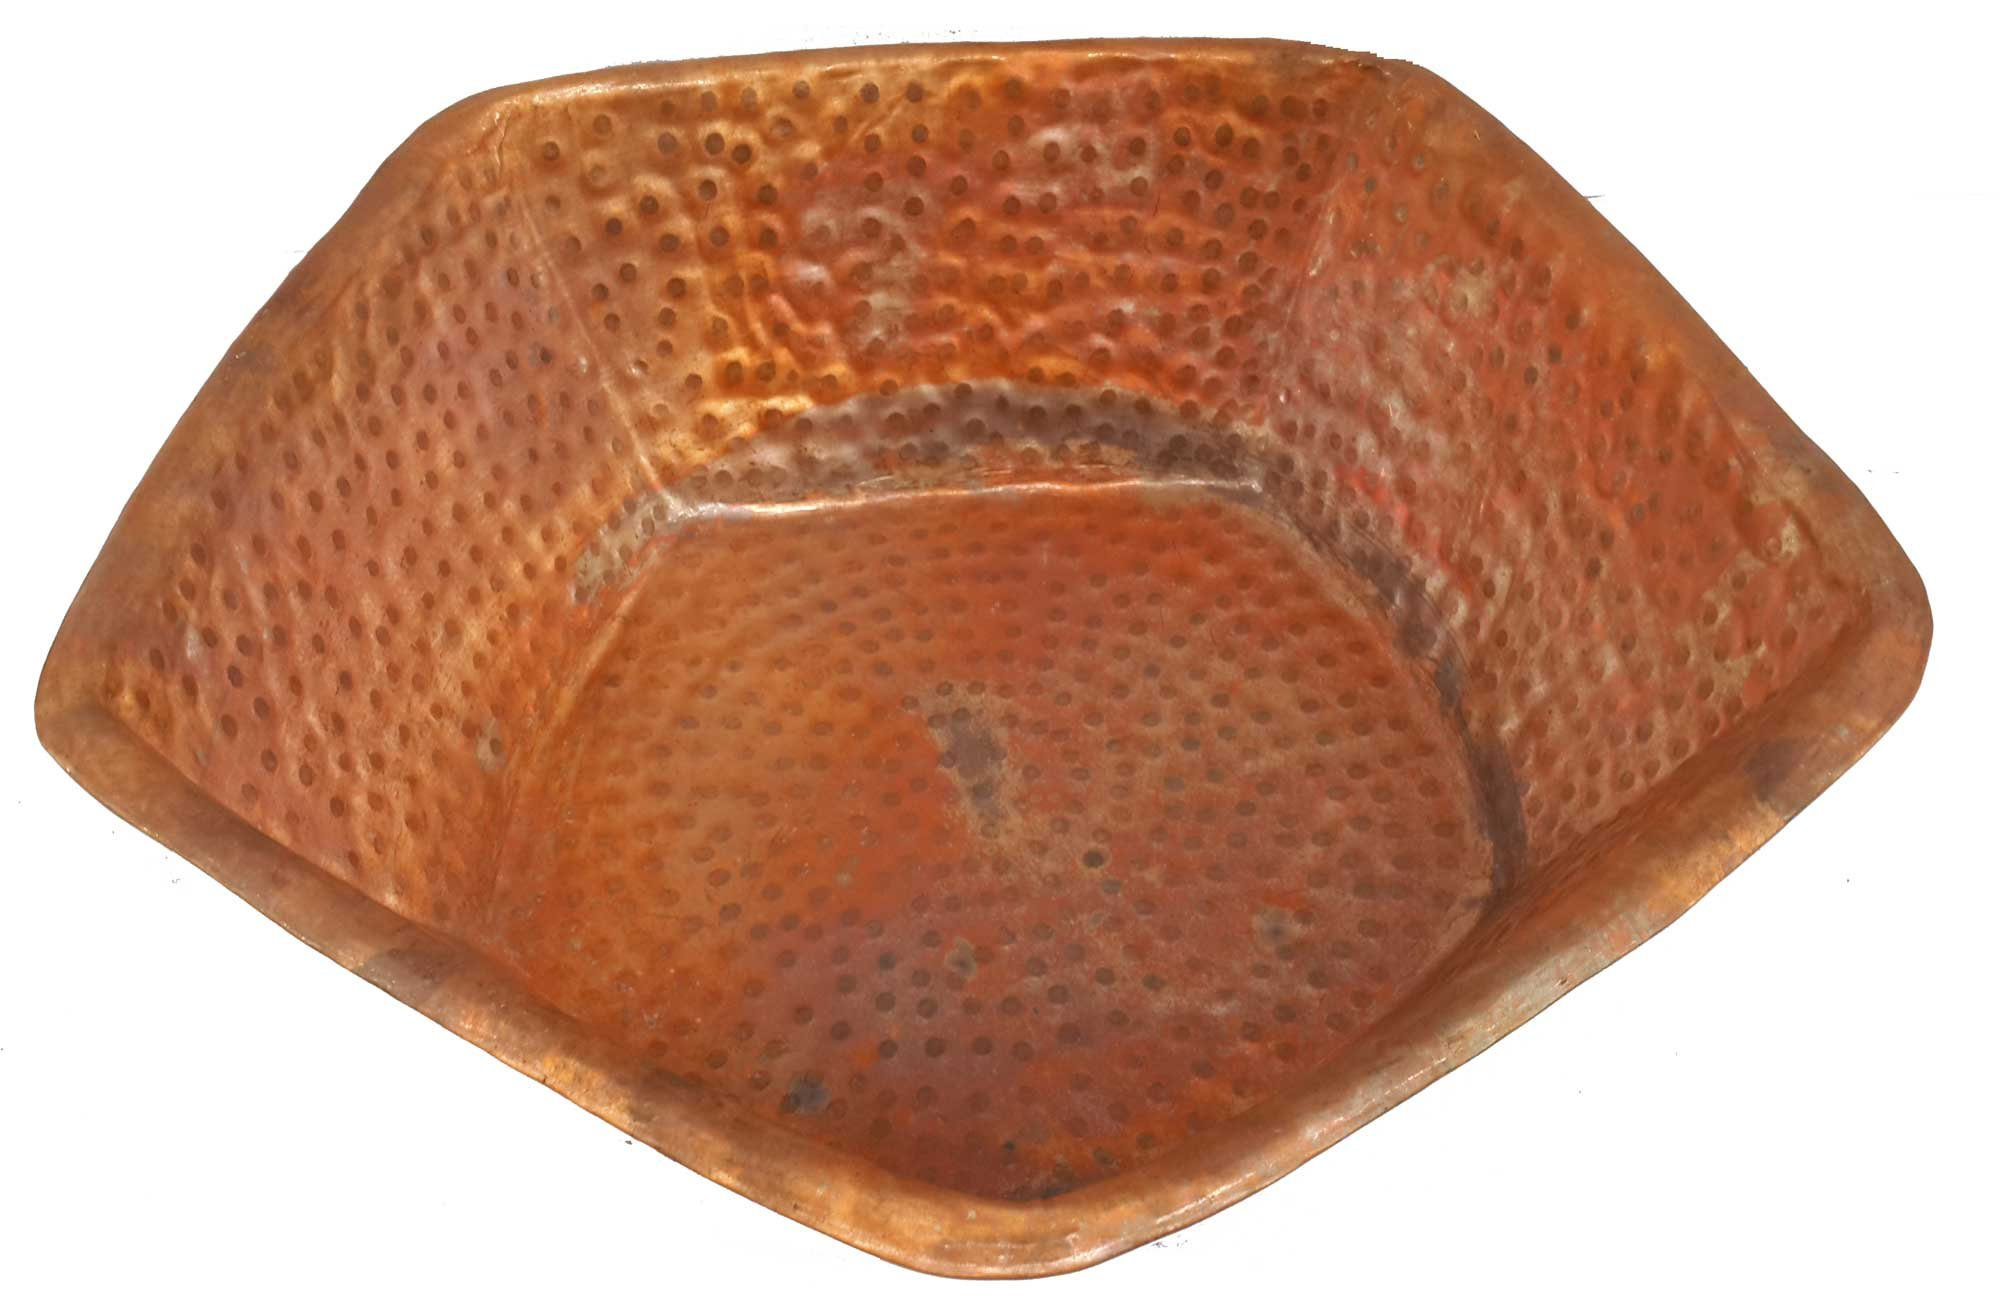 3eacc80b48f6 Get Quotations · Copper Foot Wash Soaker Pedicure Spa Pentagon Shape Bowl  Tub by Egypt gift shops